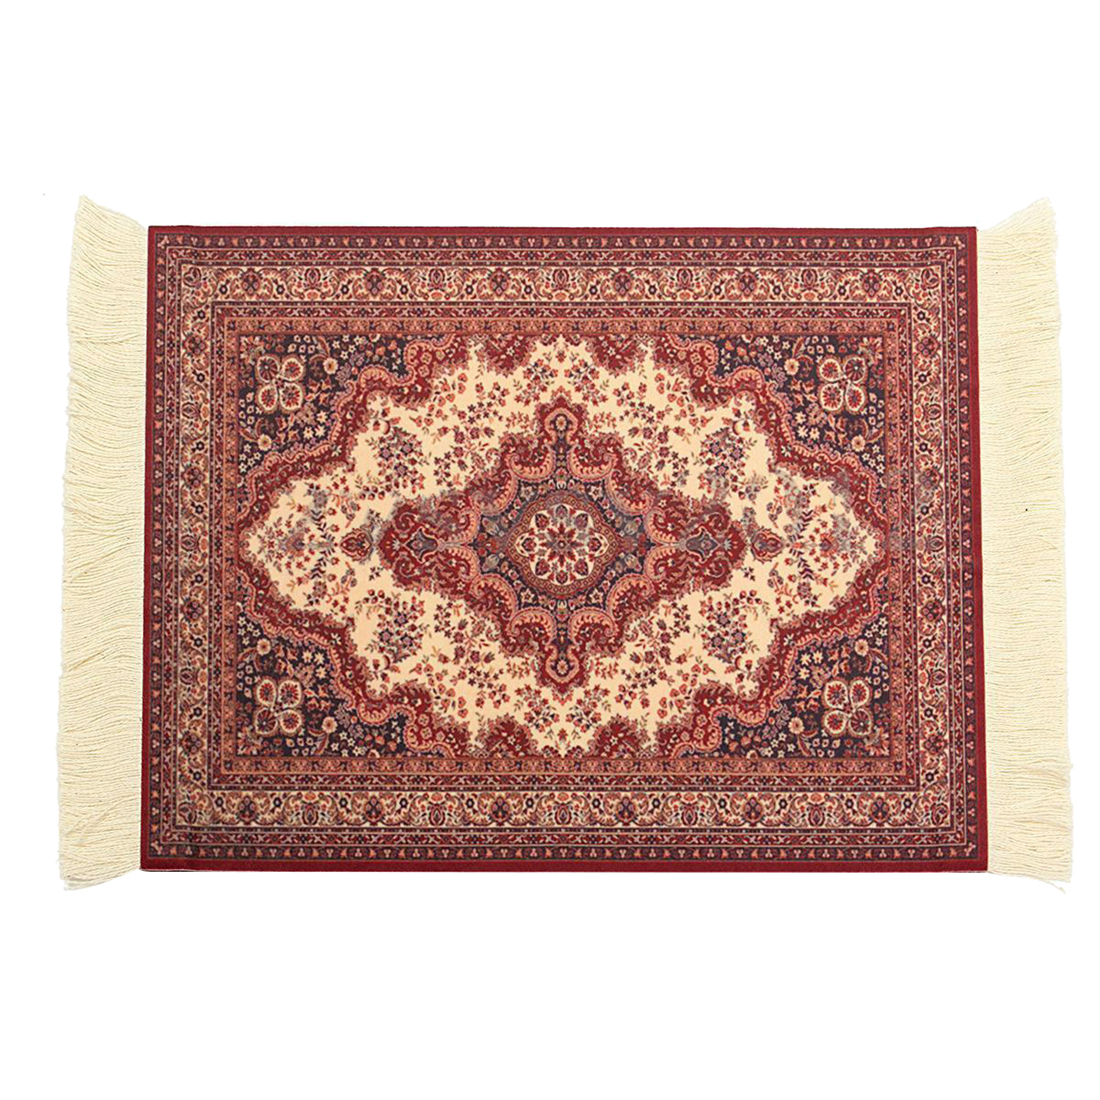 28x18cm Cotton Persian Rug Mat Mousepad Retro Style Carpet